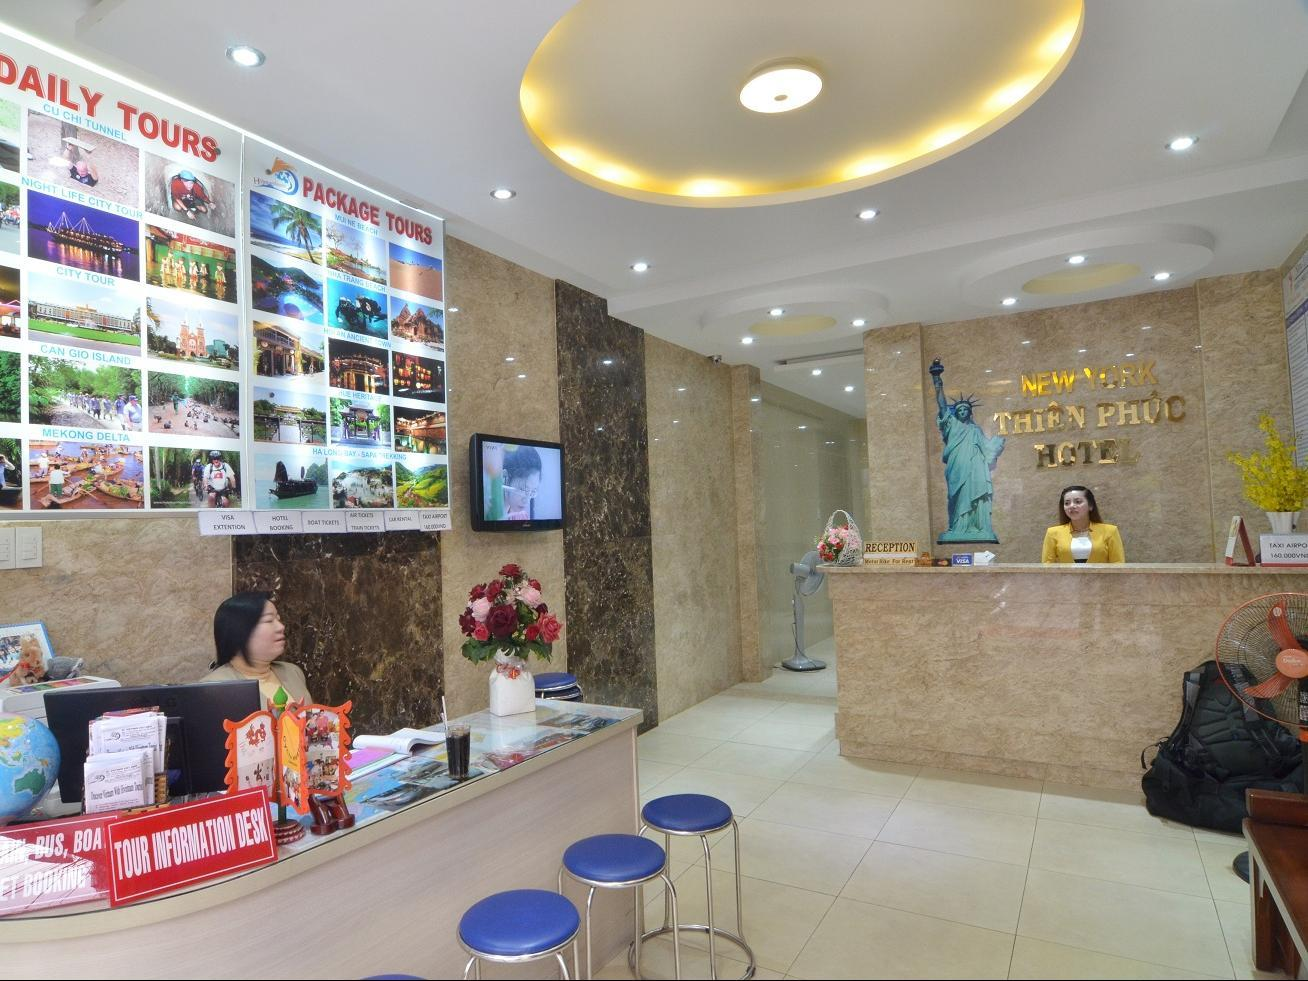 Hotell New York Thien Phuc Hotel